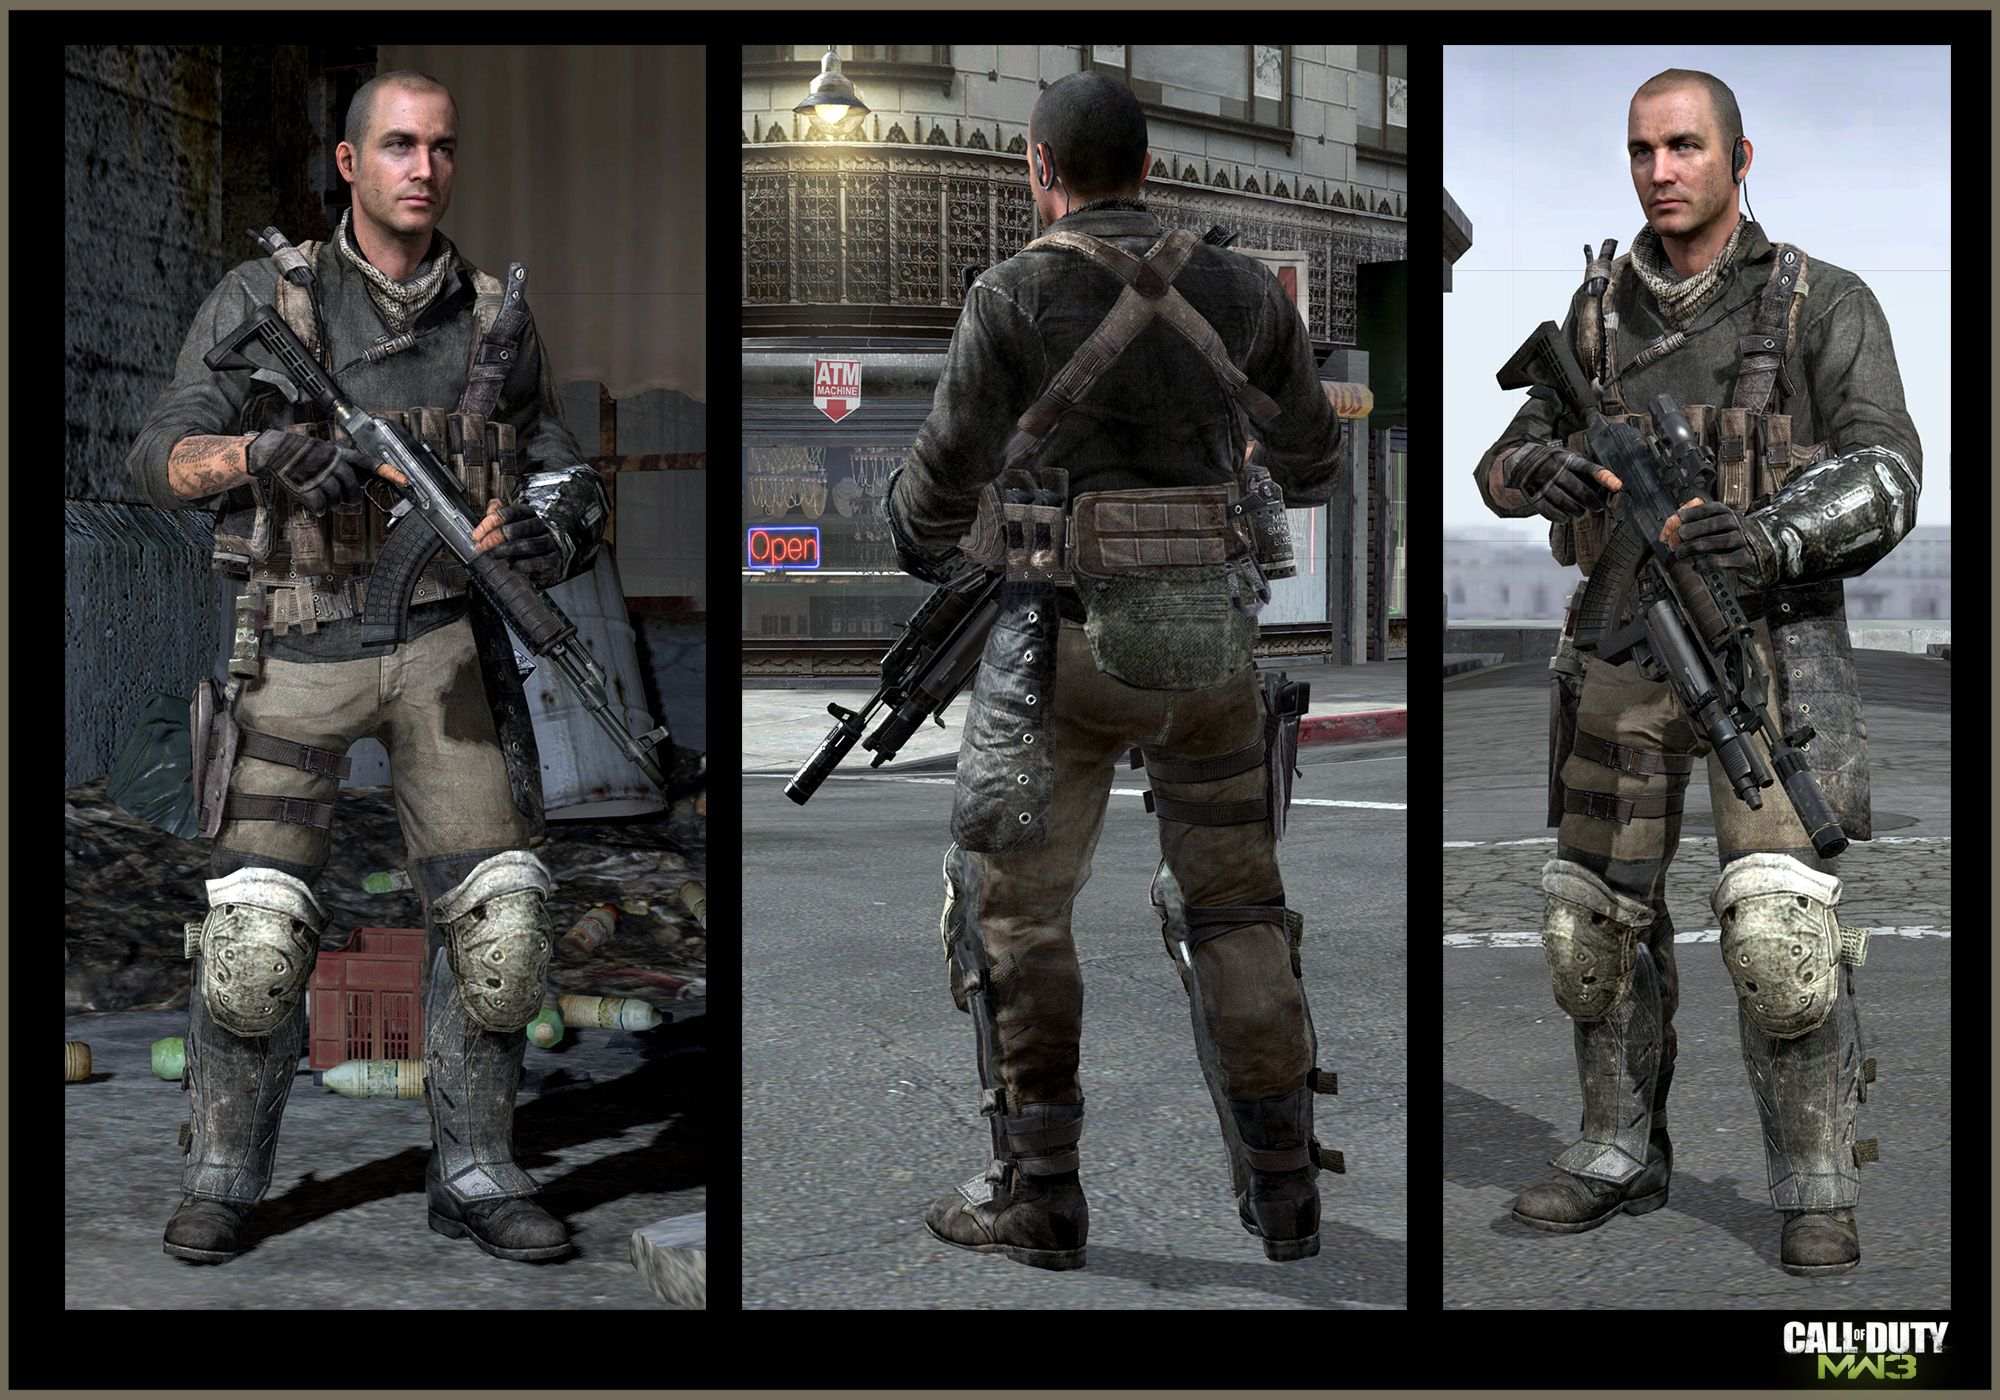 Call Of Duty Mw3 Activision Infinity Ward Jake Rowell Character Art Marketing Image Call Of Duty Modern Warfare Infinity Ward